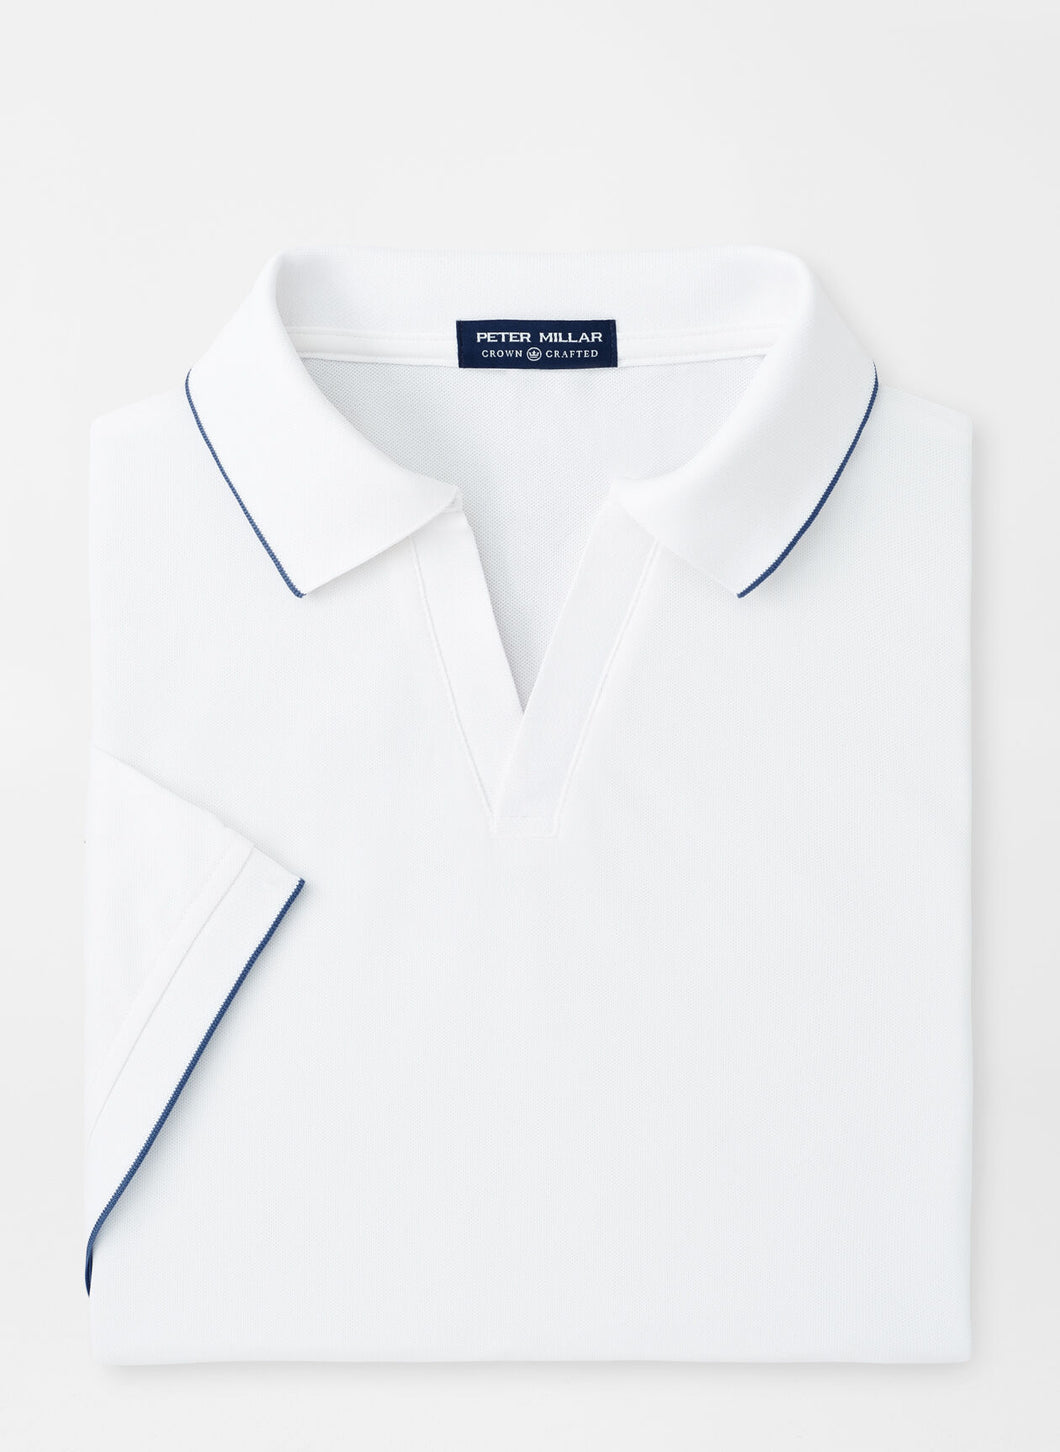 Peter Millar Summertime Performance Mesh Polo in White